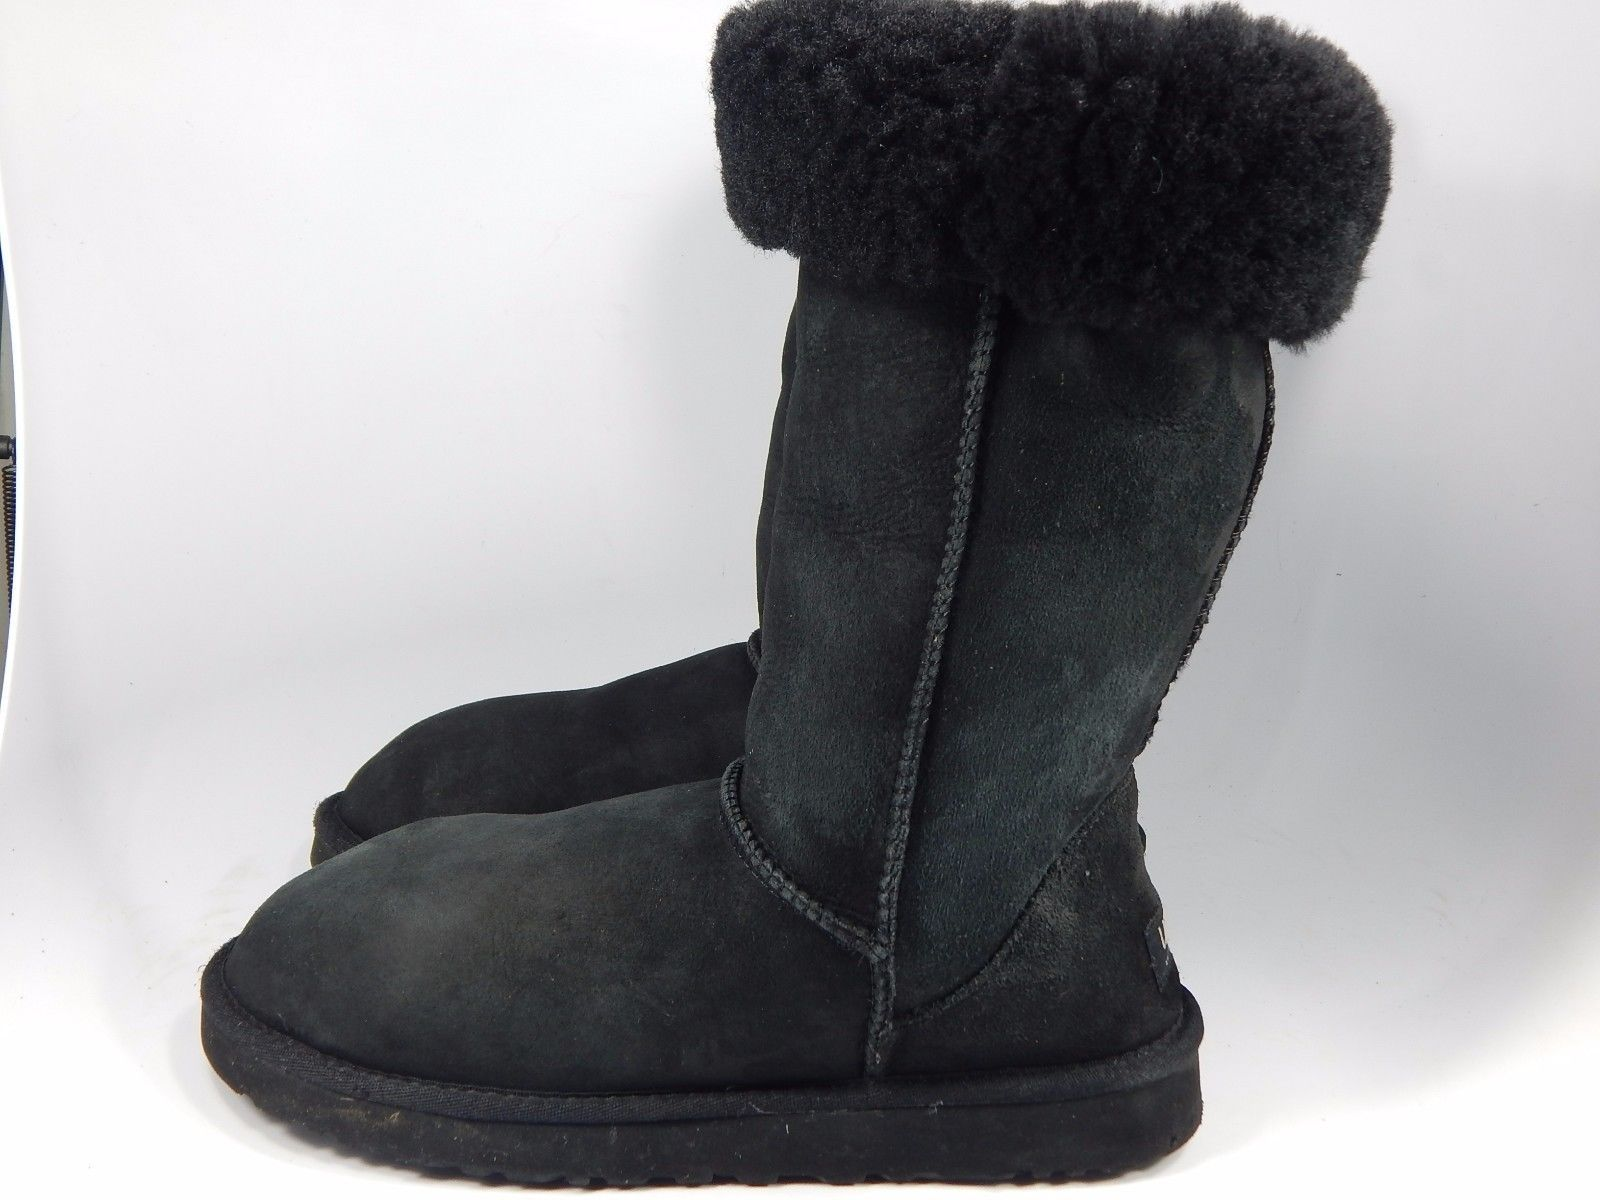 UGG Classic Tall Black Sheepskin Boots Size 10 M (B) EU 41 Model # 5815